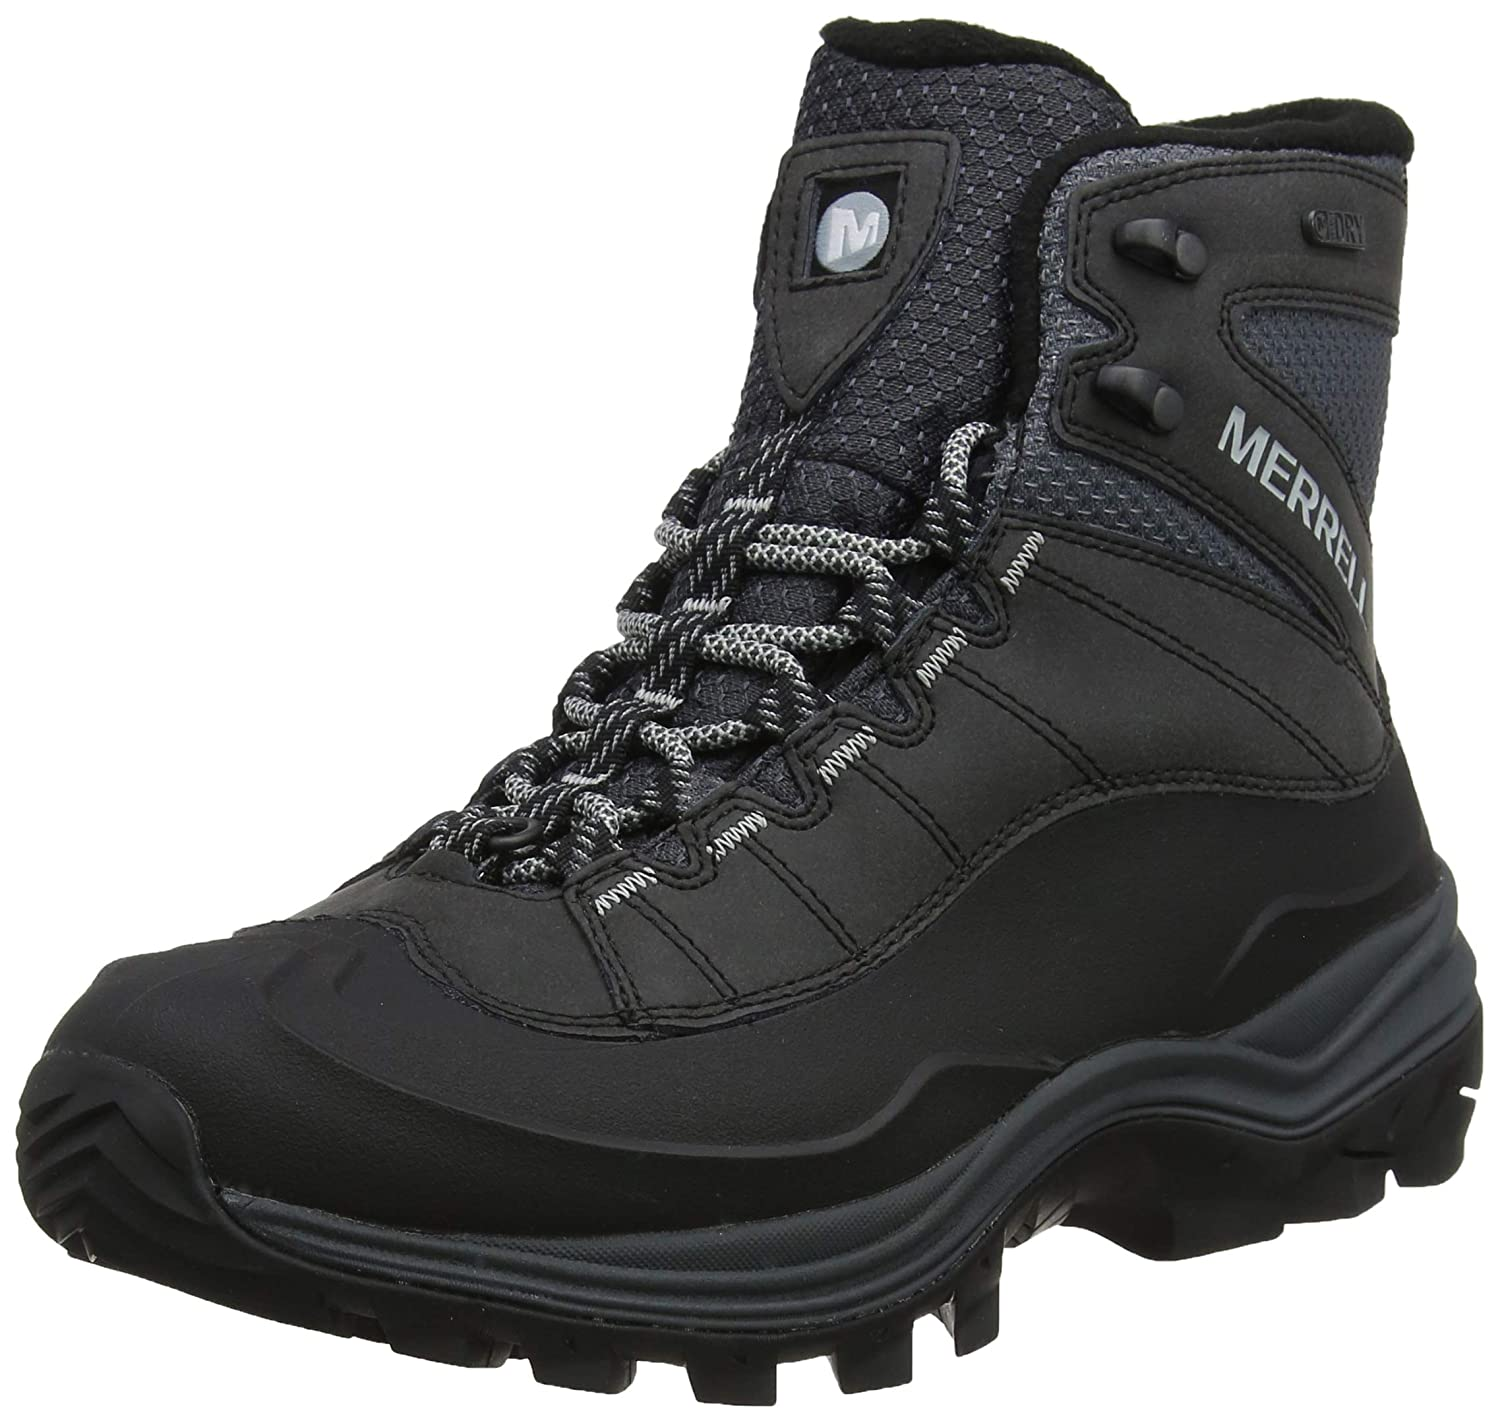 Merrell Thermo Chill Mid Shell Waterproof, Botas de Nieve para Hombre